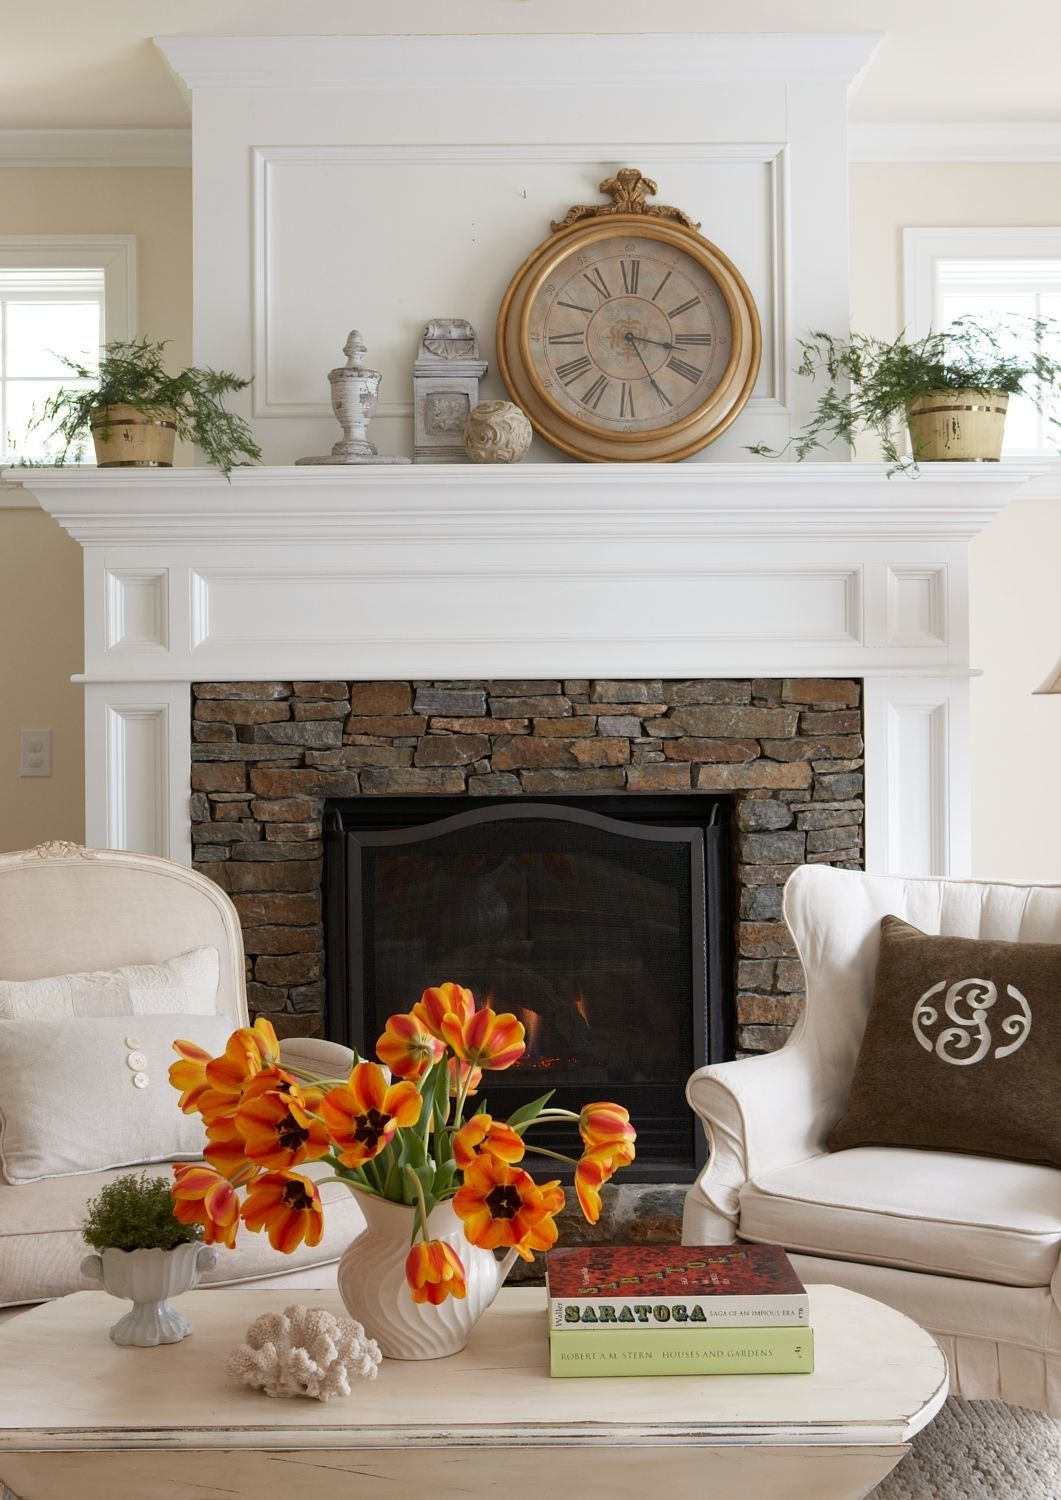 Keep molding/casing around fireplace but maybe replace the